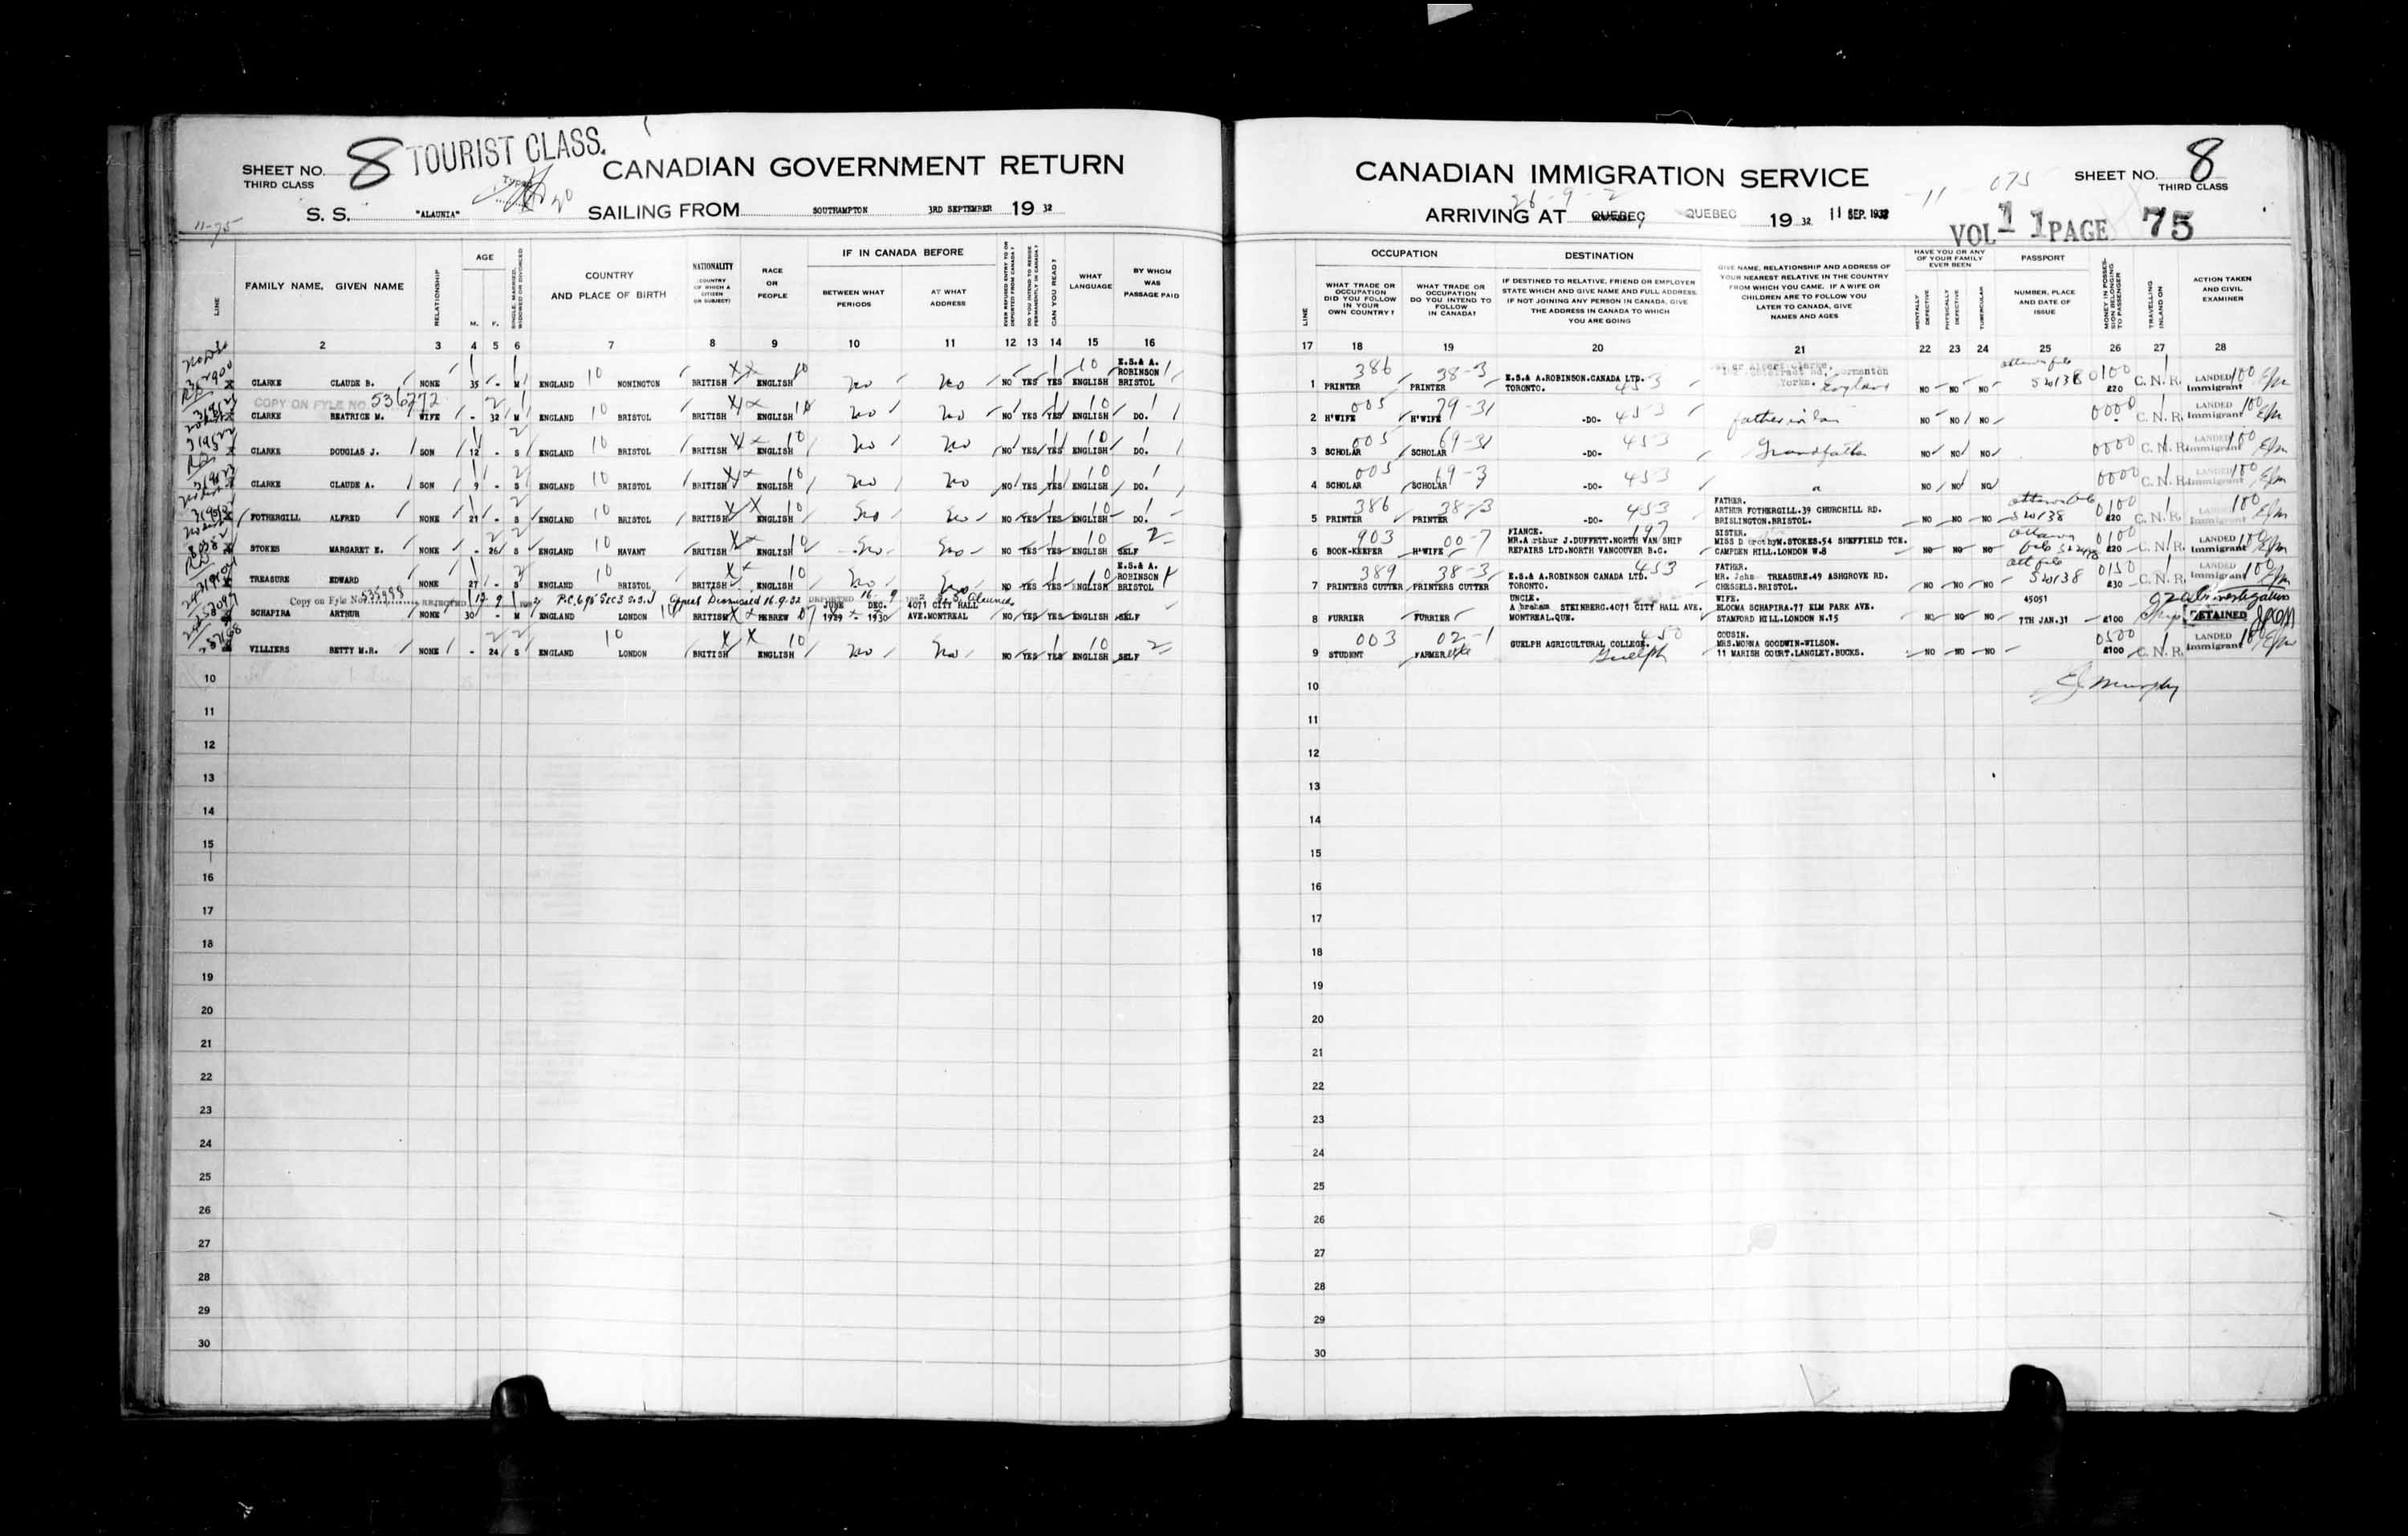 Title: Passenger Lists: Quebec City (1925-1935) - Mikan Number: 134839 - Microform: t-14781